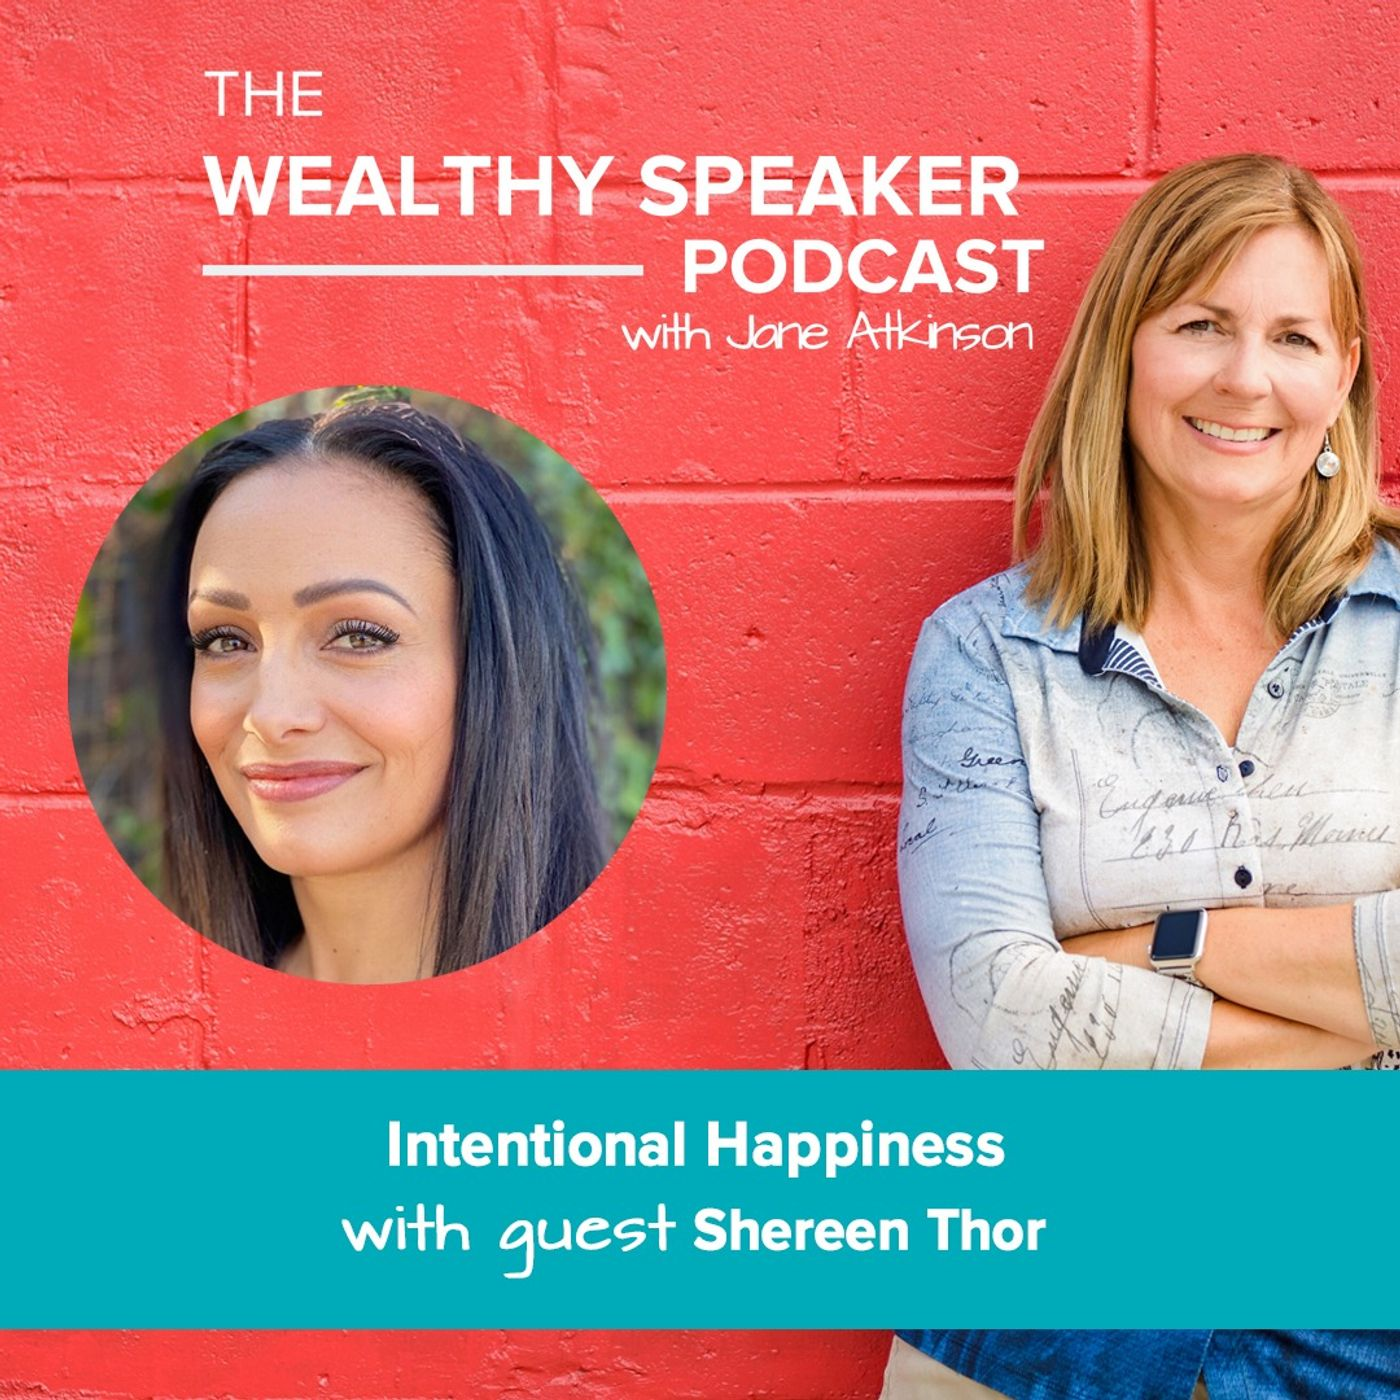 Intentional Happiness with Jane Atkinson and Shereen Thor